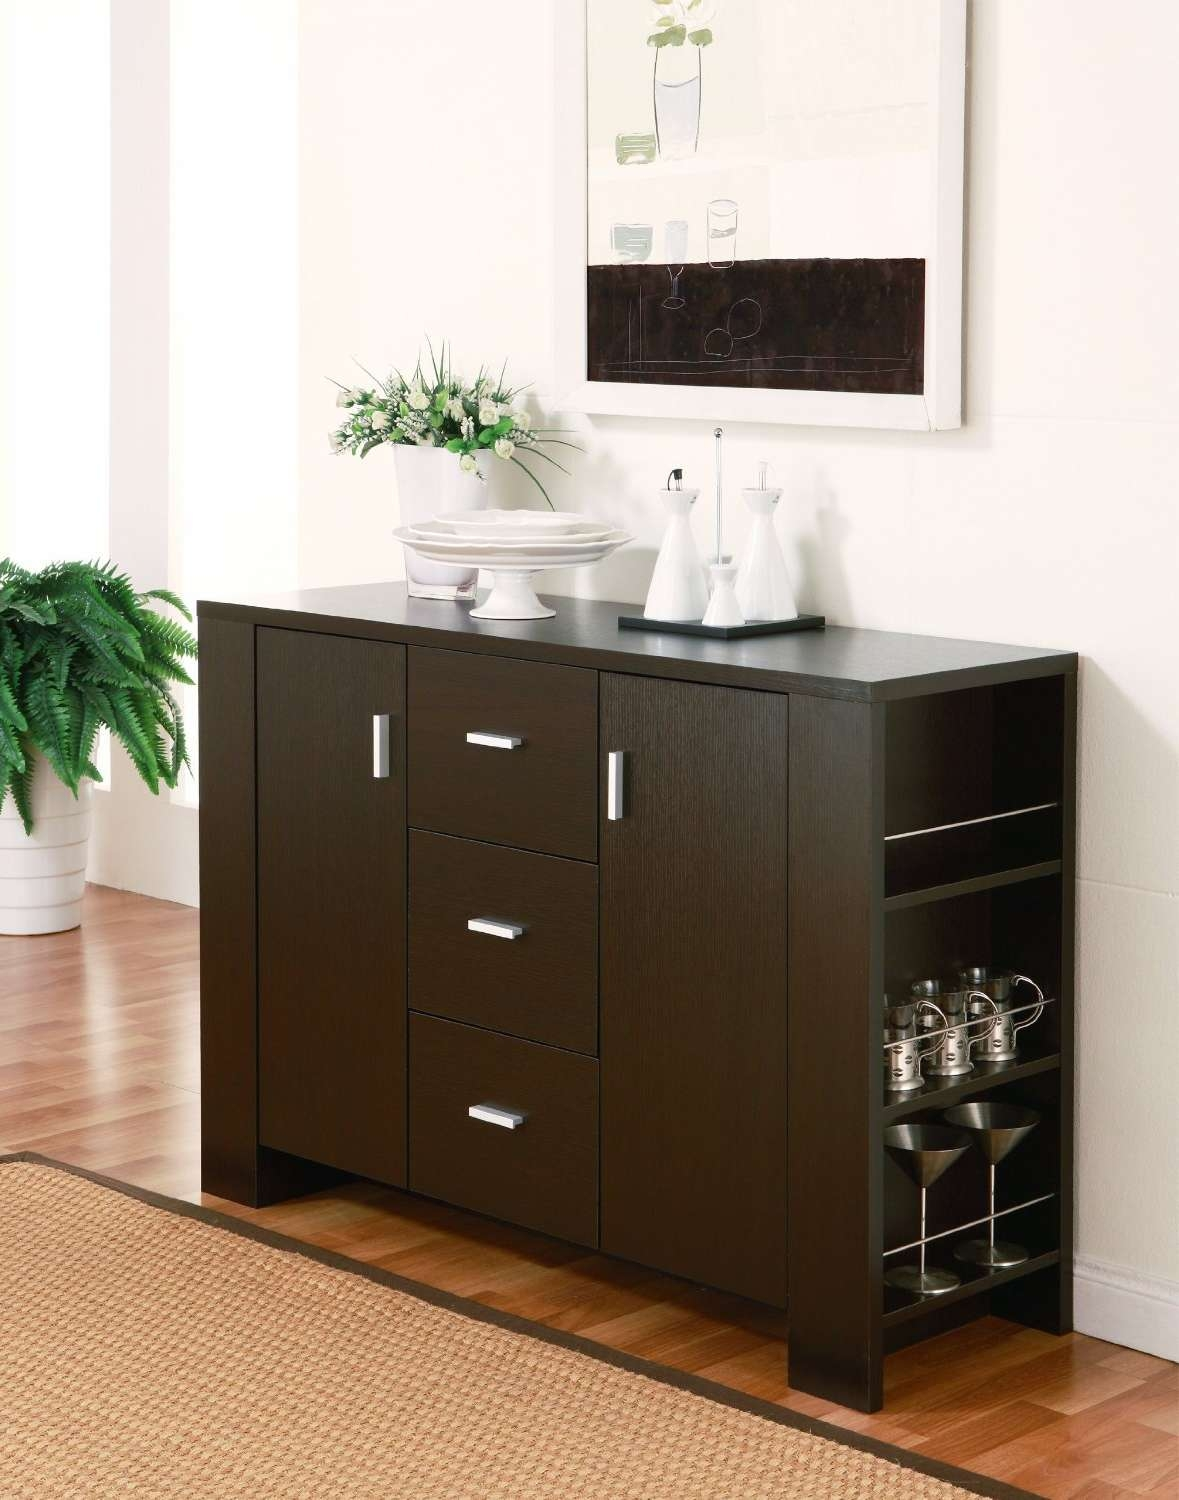 Graceful Room Sideboards Oak Home Design Ideas Room Sideboards Oak Pertaining To Dining Room Servers And Sideboards (View 14 of 20)